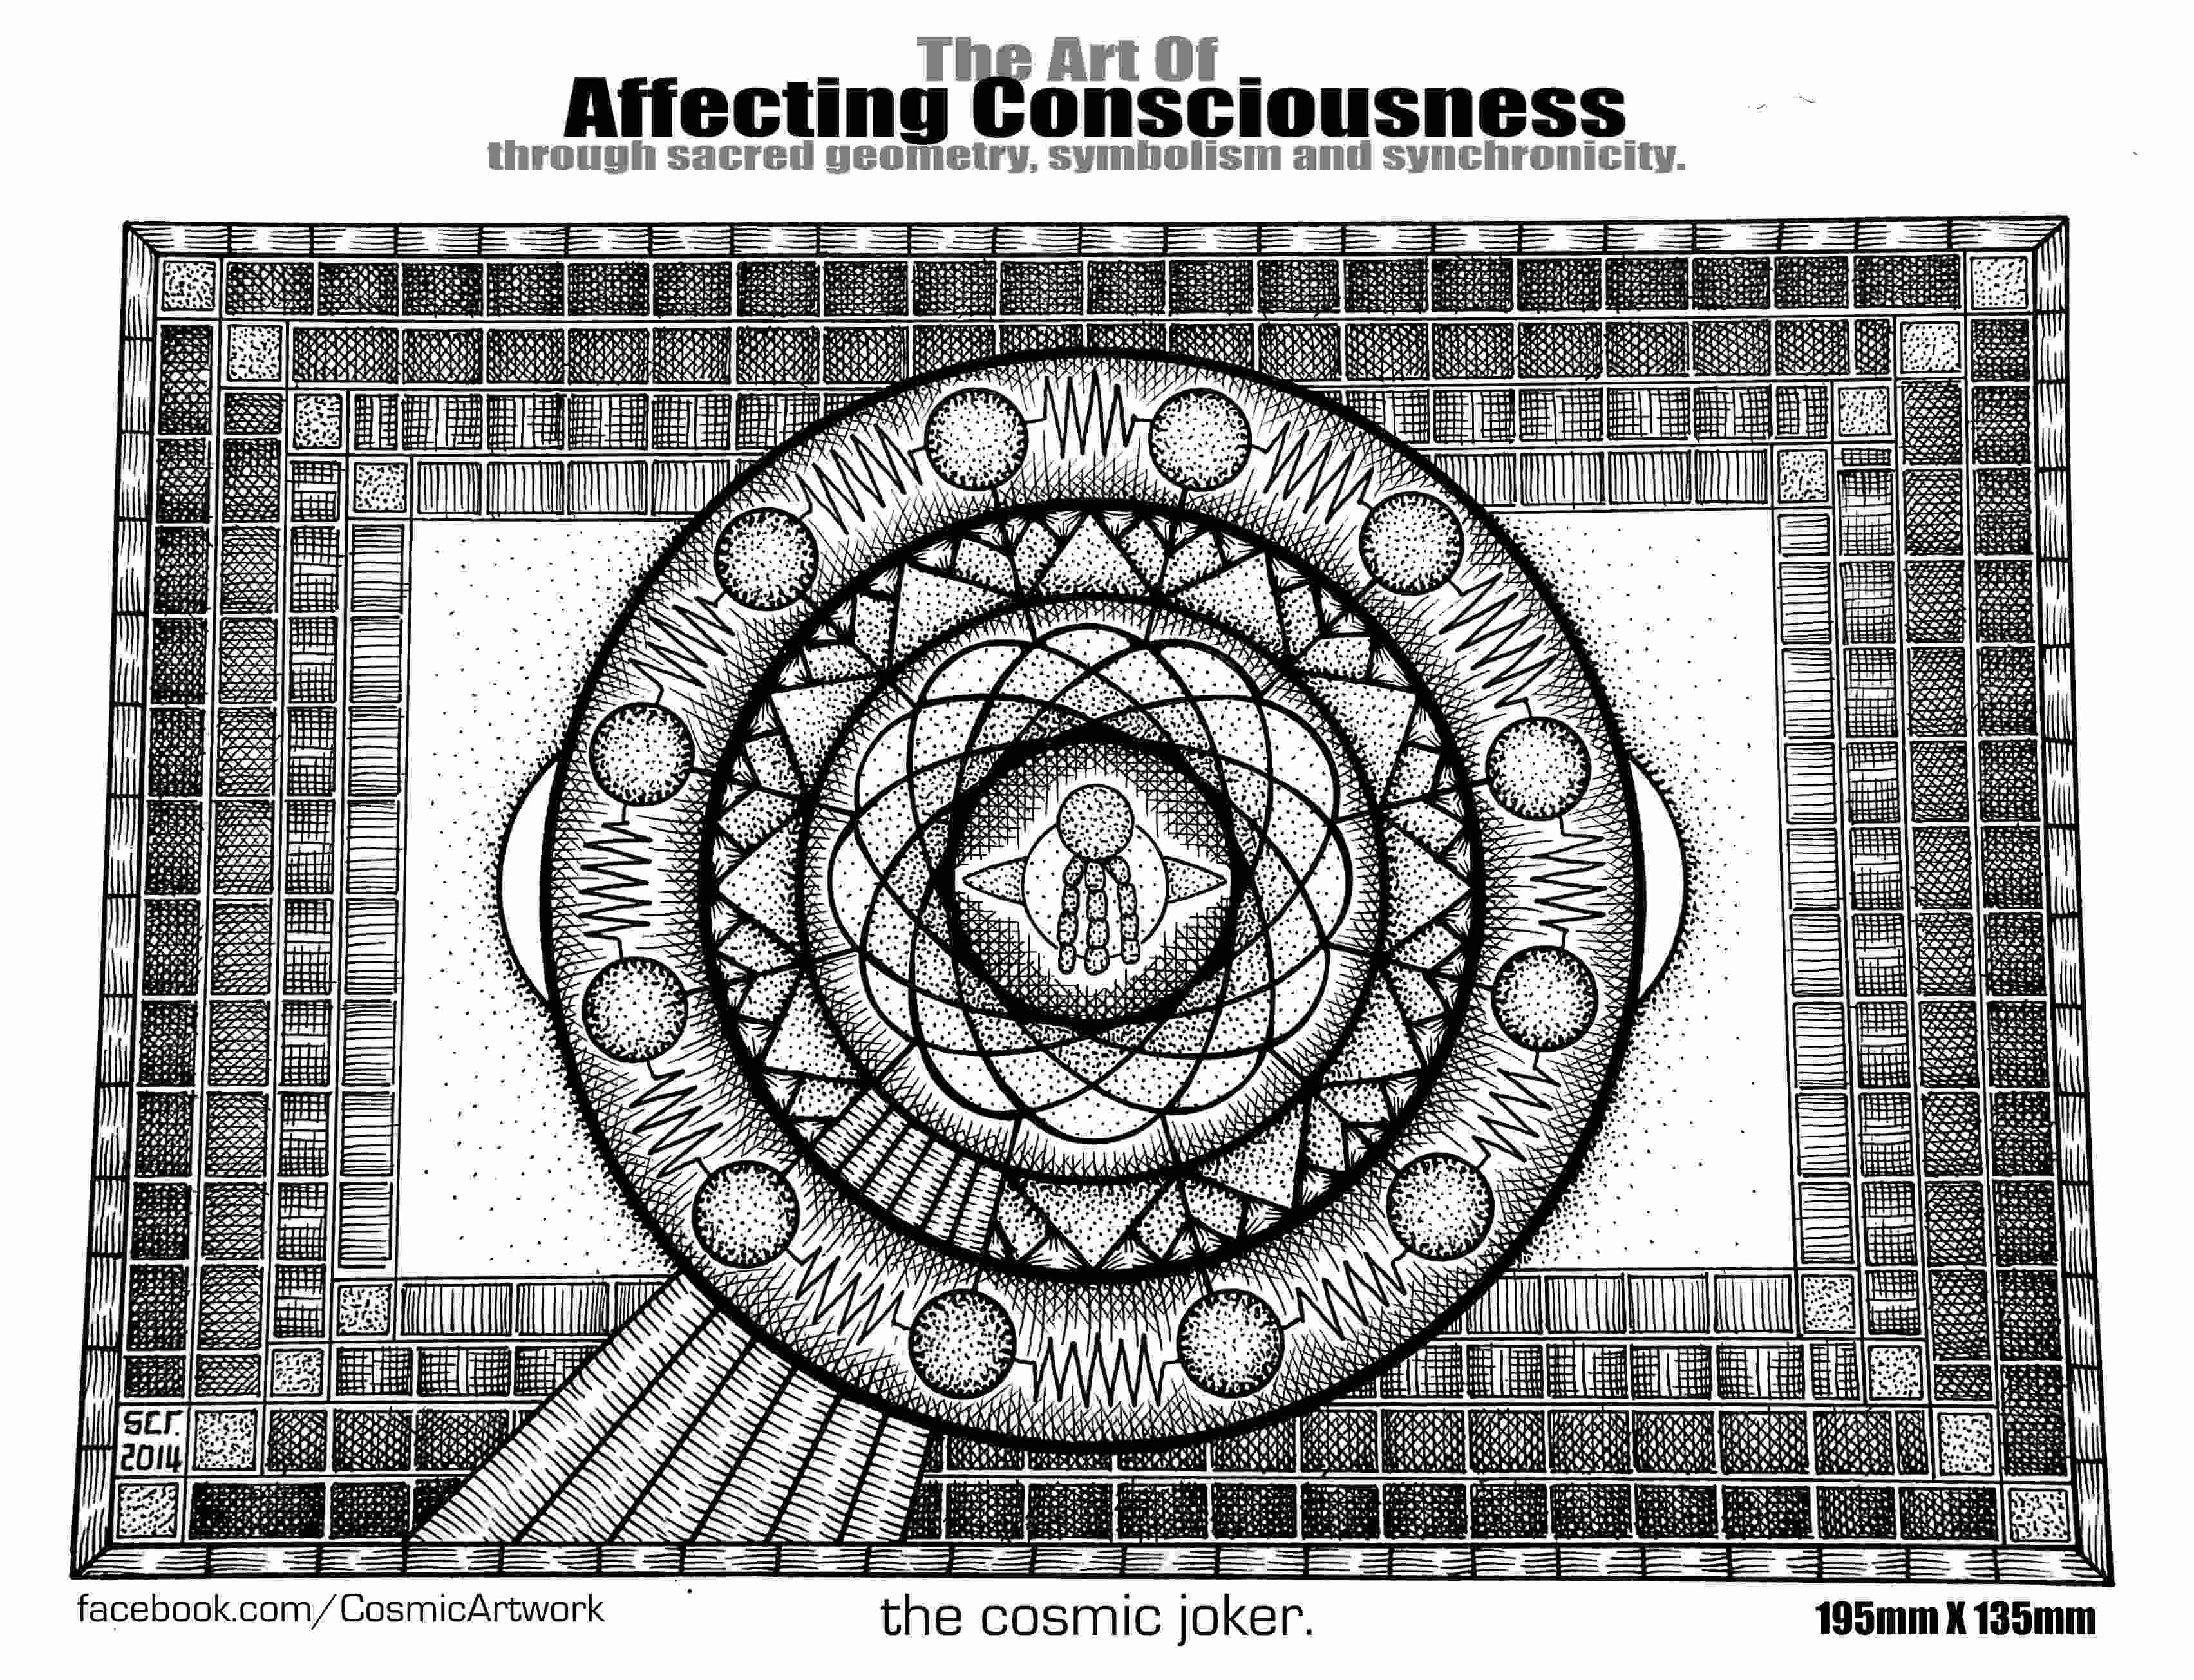 Egypt the art of affecting consciousness 1 biocorpaavc